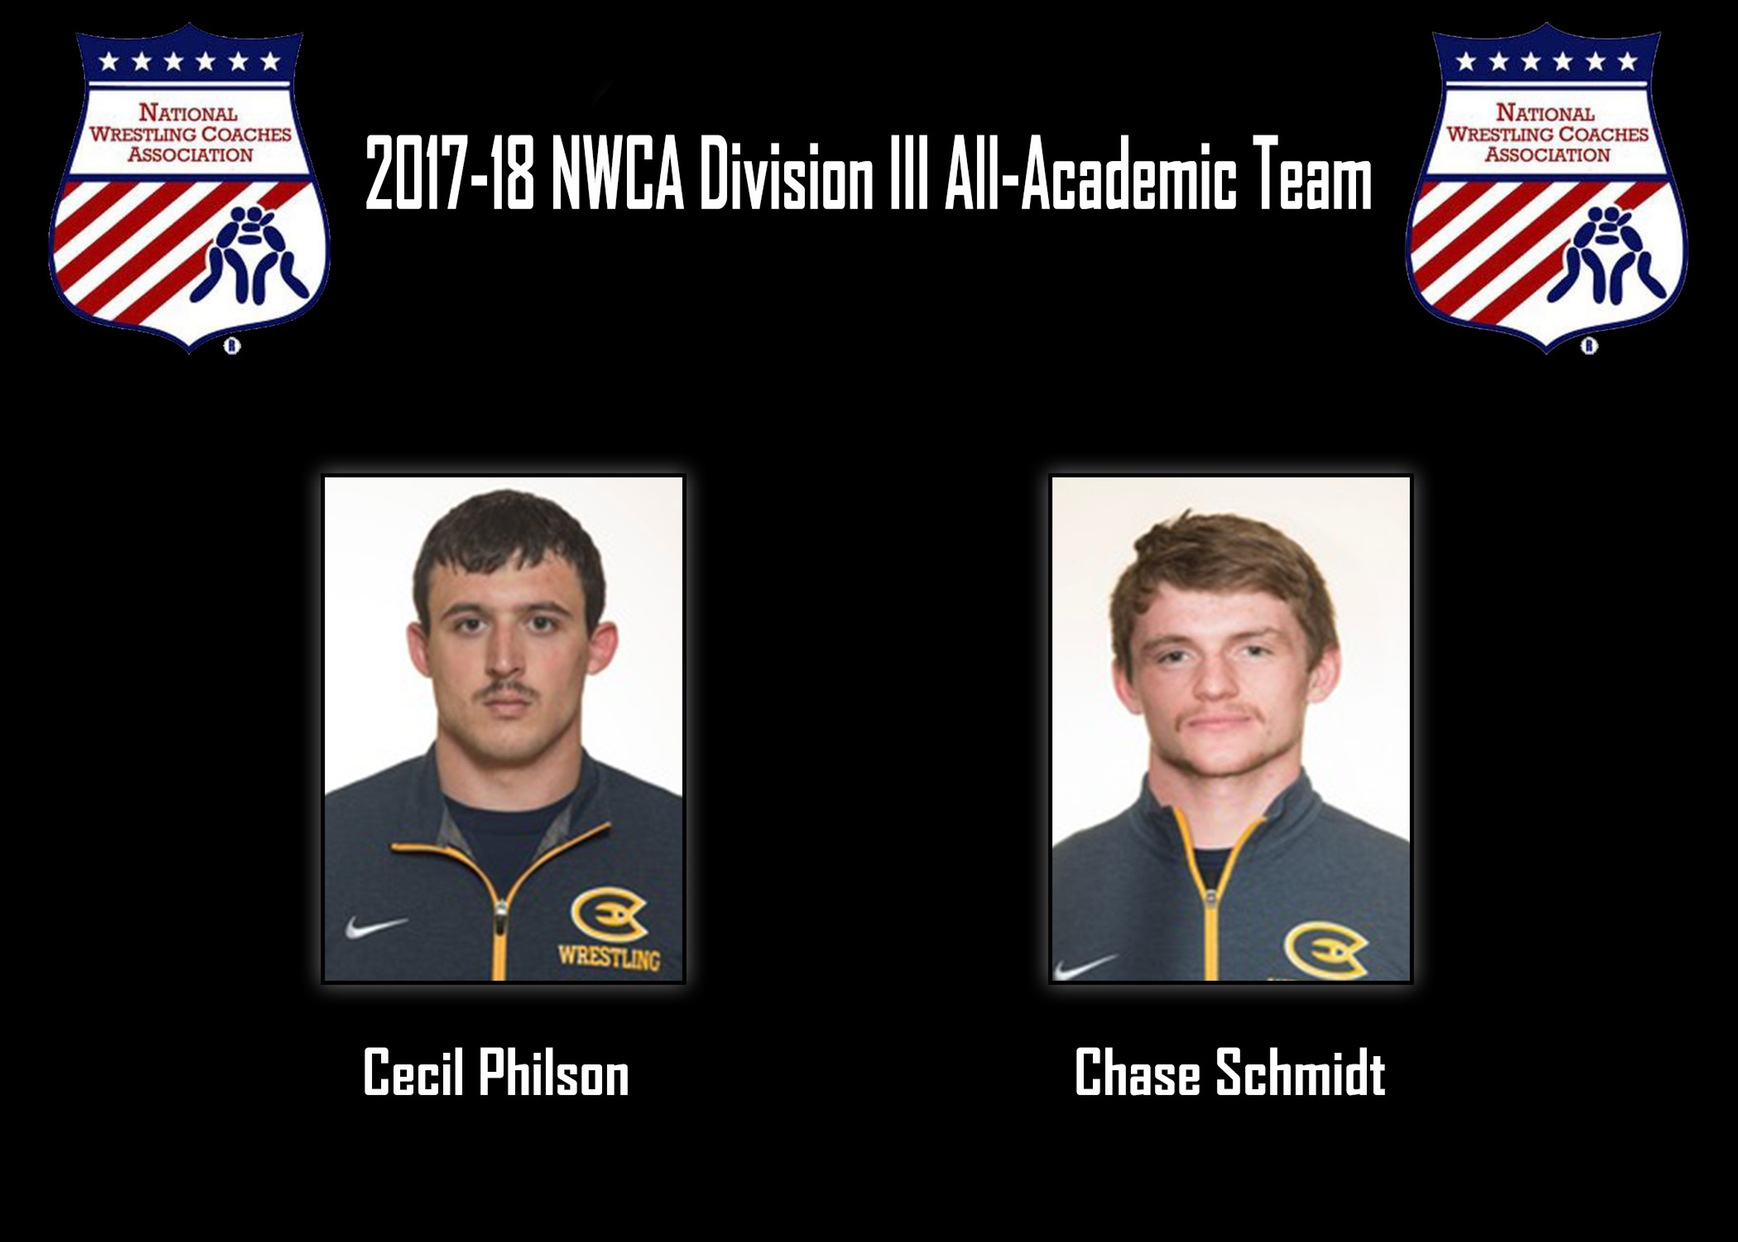 Philson and Schmidt added to NWCA Division III All-Academic Team